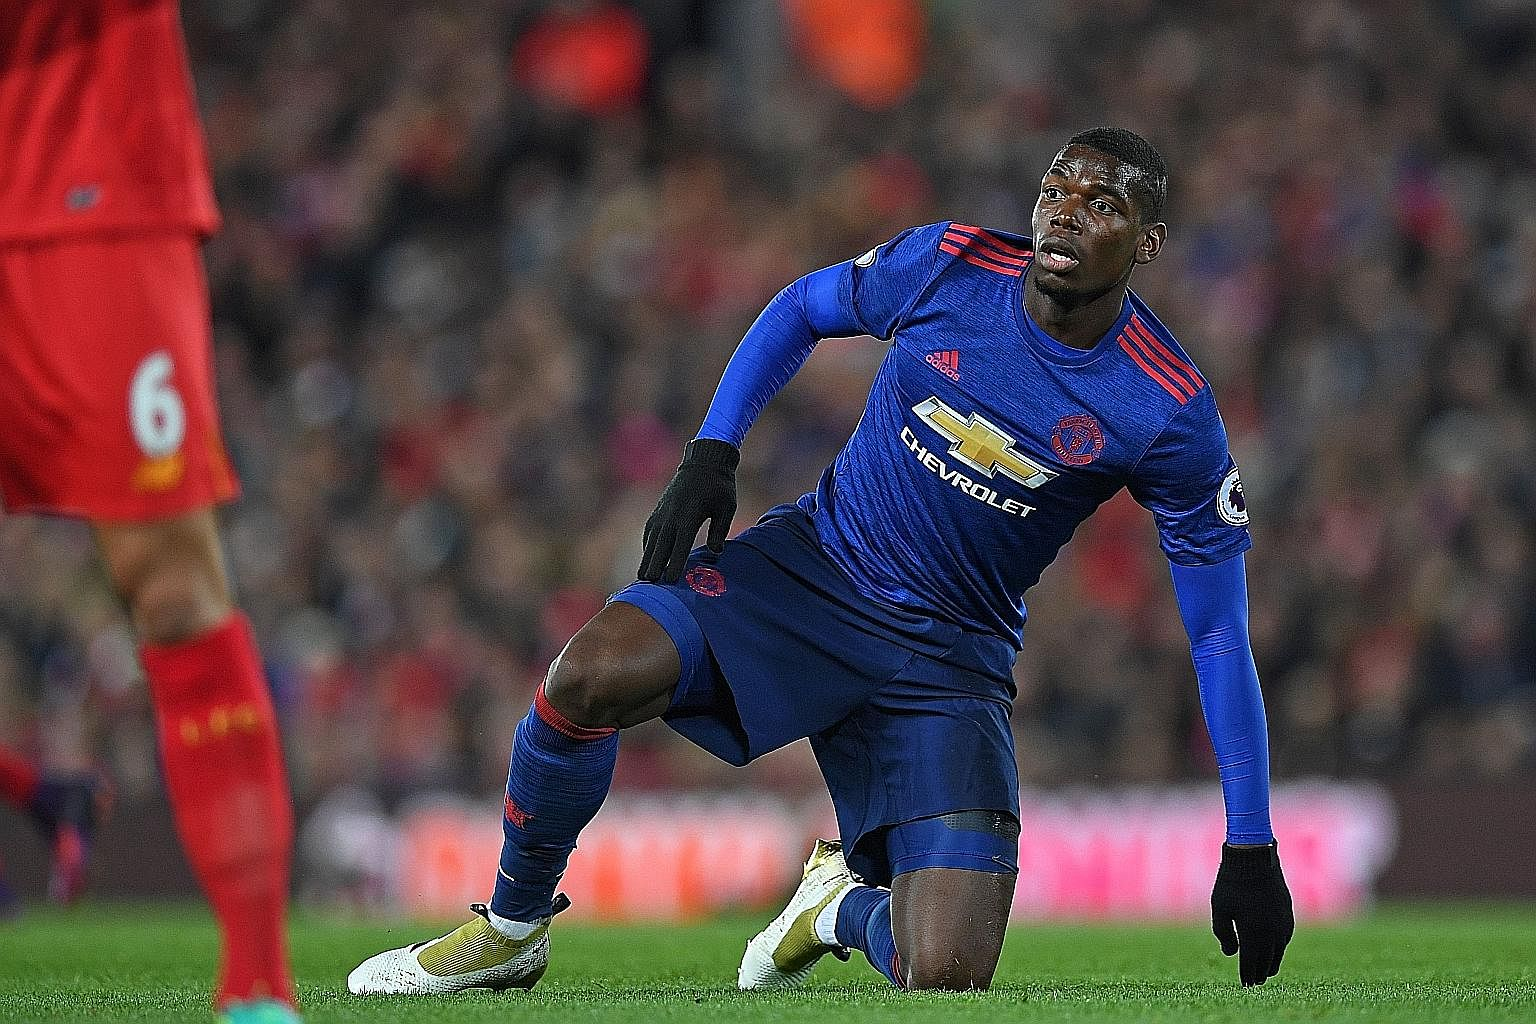 Paul Pogba's versatility will not be made full use of under Jose Mourinho, as the United manager prefers specialists for each role.